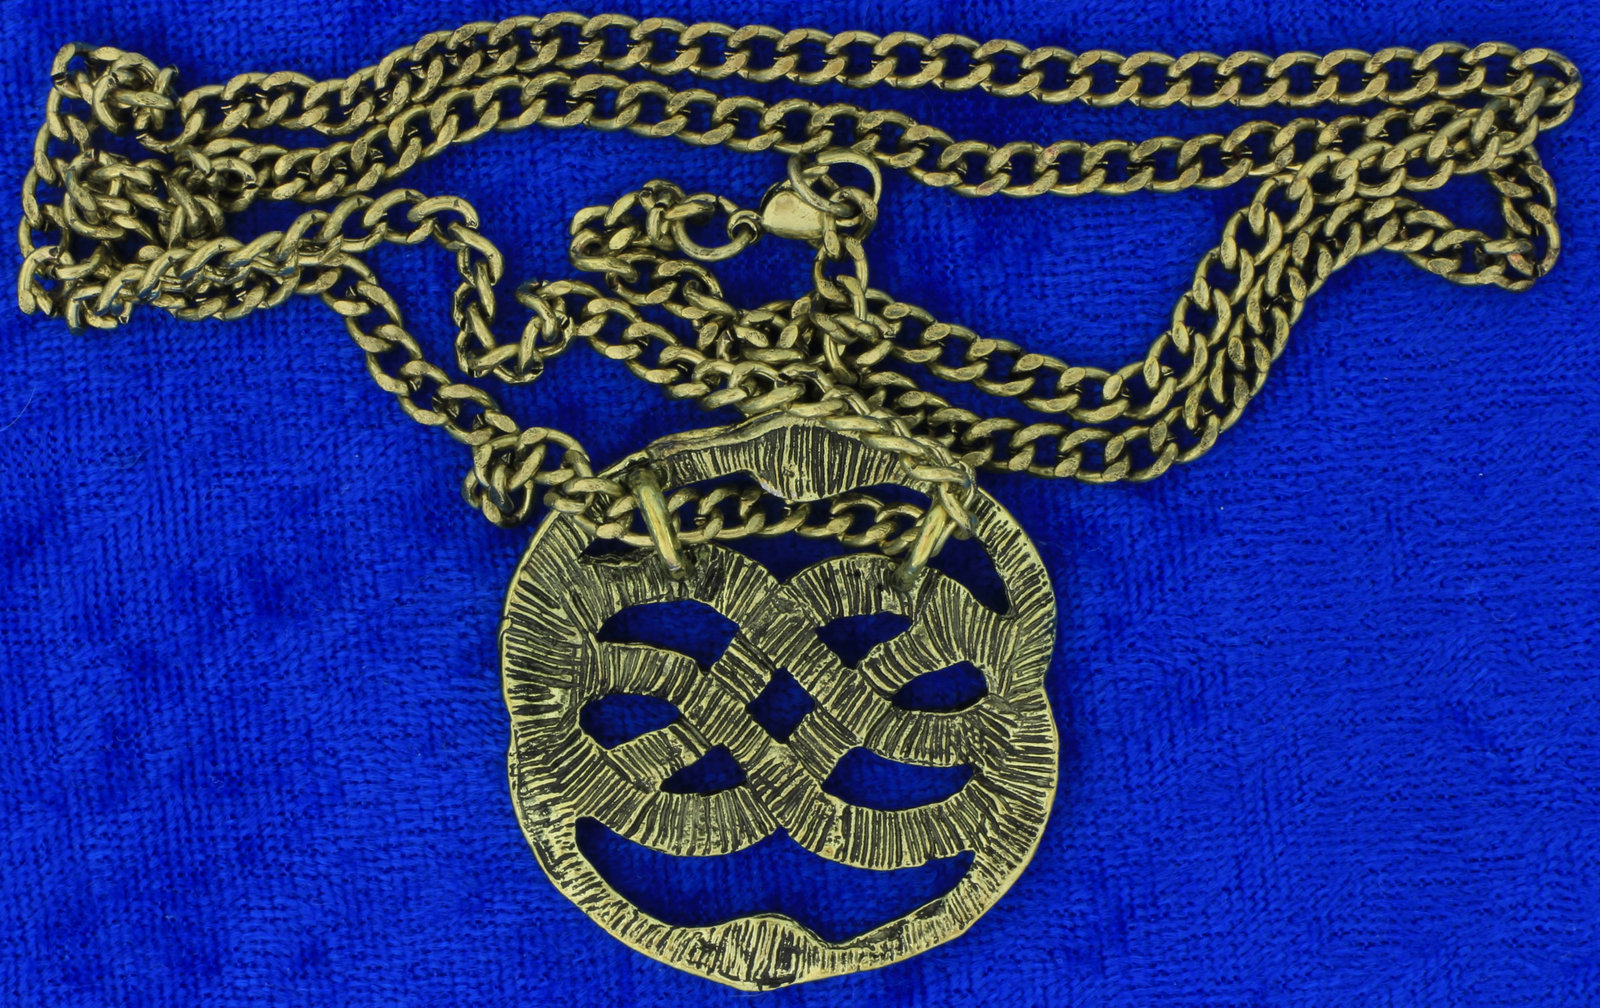 Auryn's Quest Necklace Neverending Story Very Nice Chain Style Length Choice